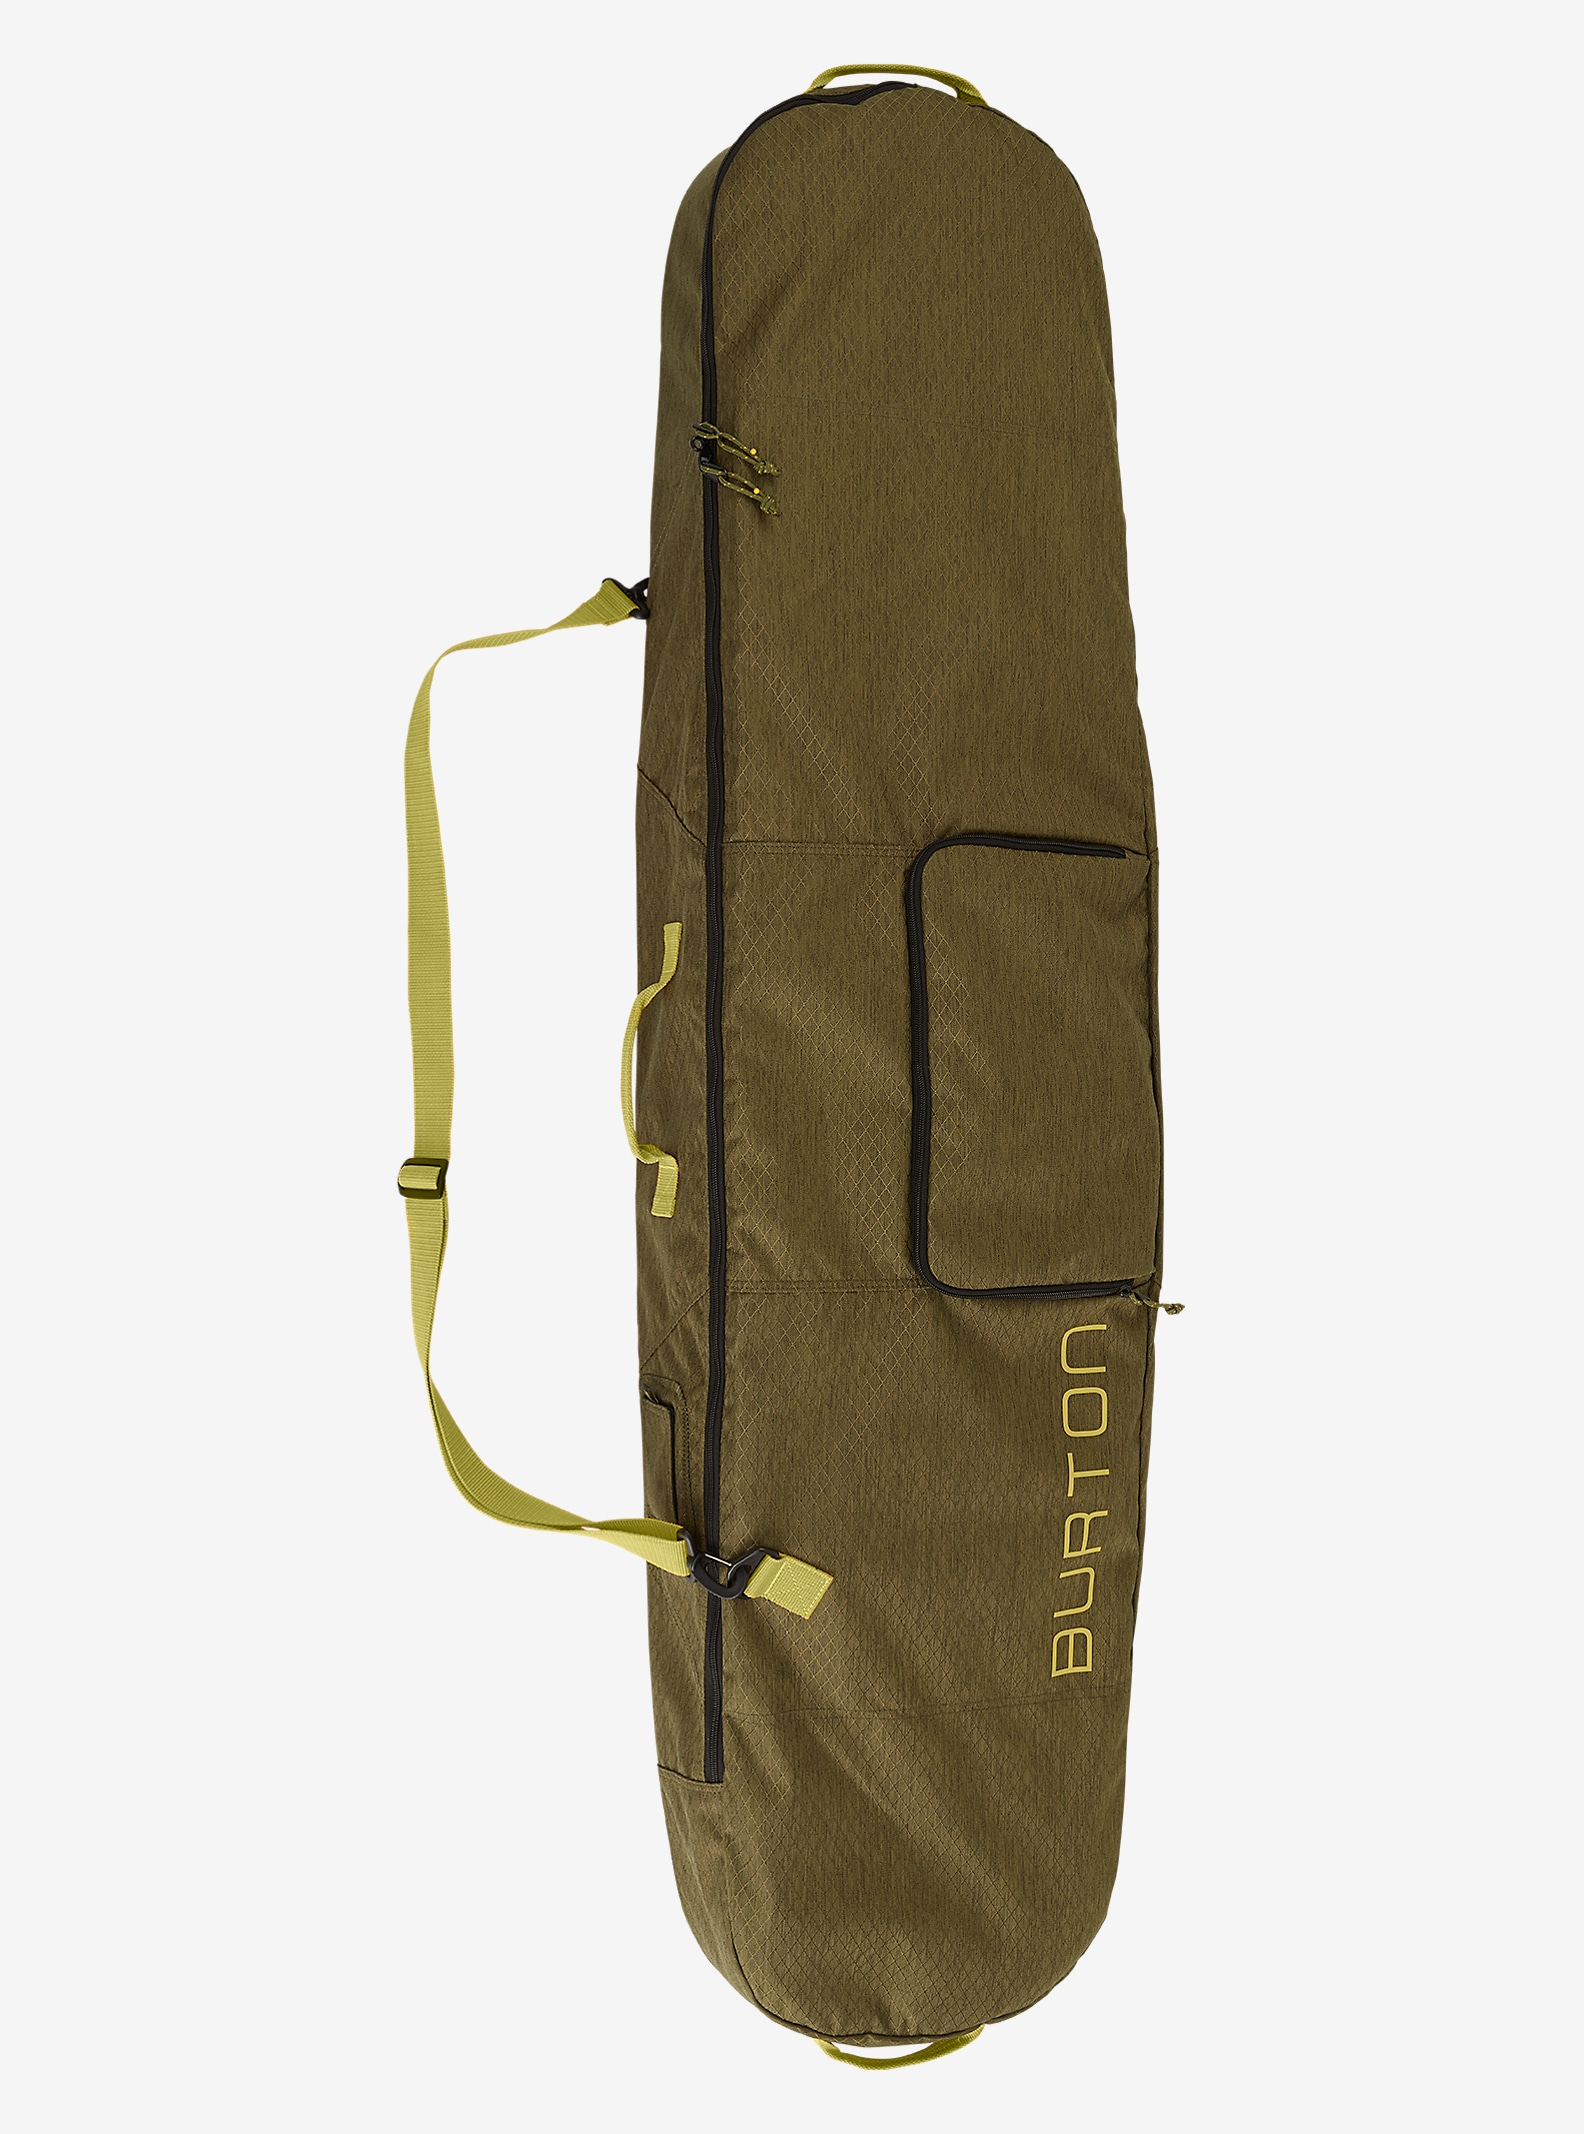 Burton Board Sack shown in Jungle